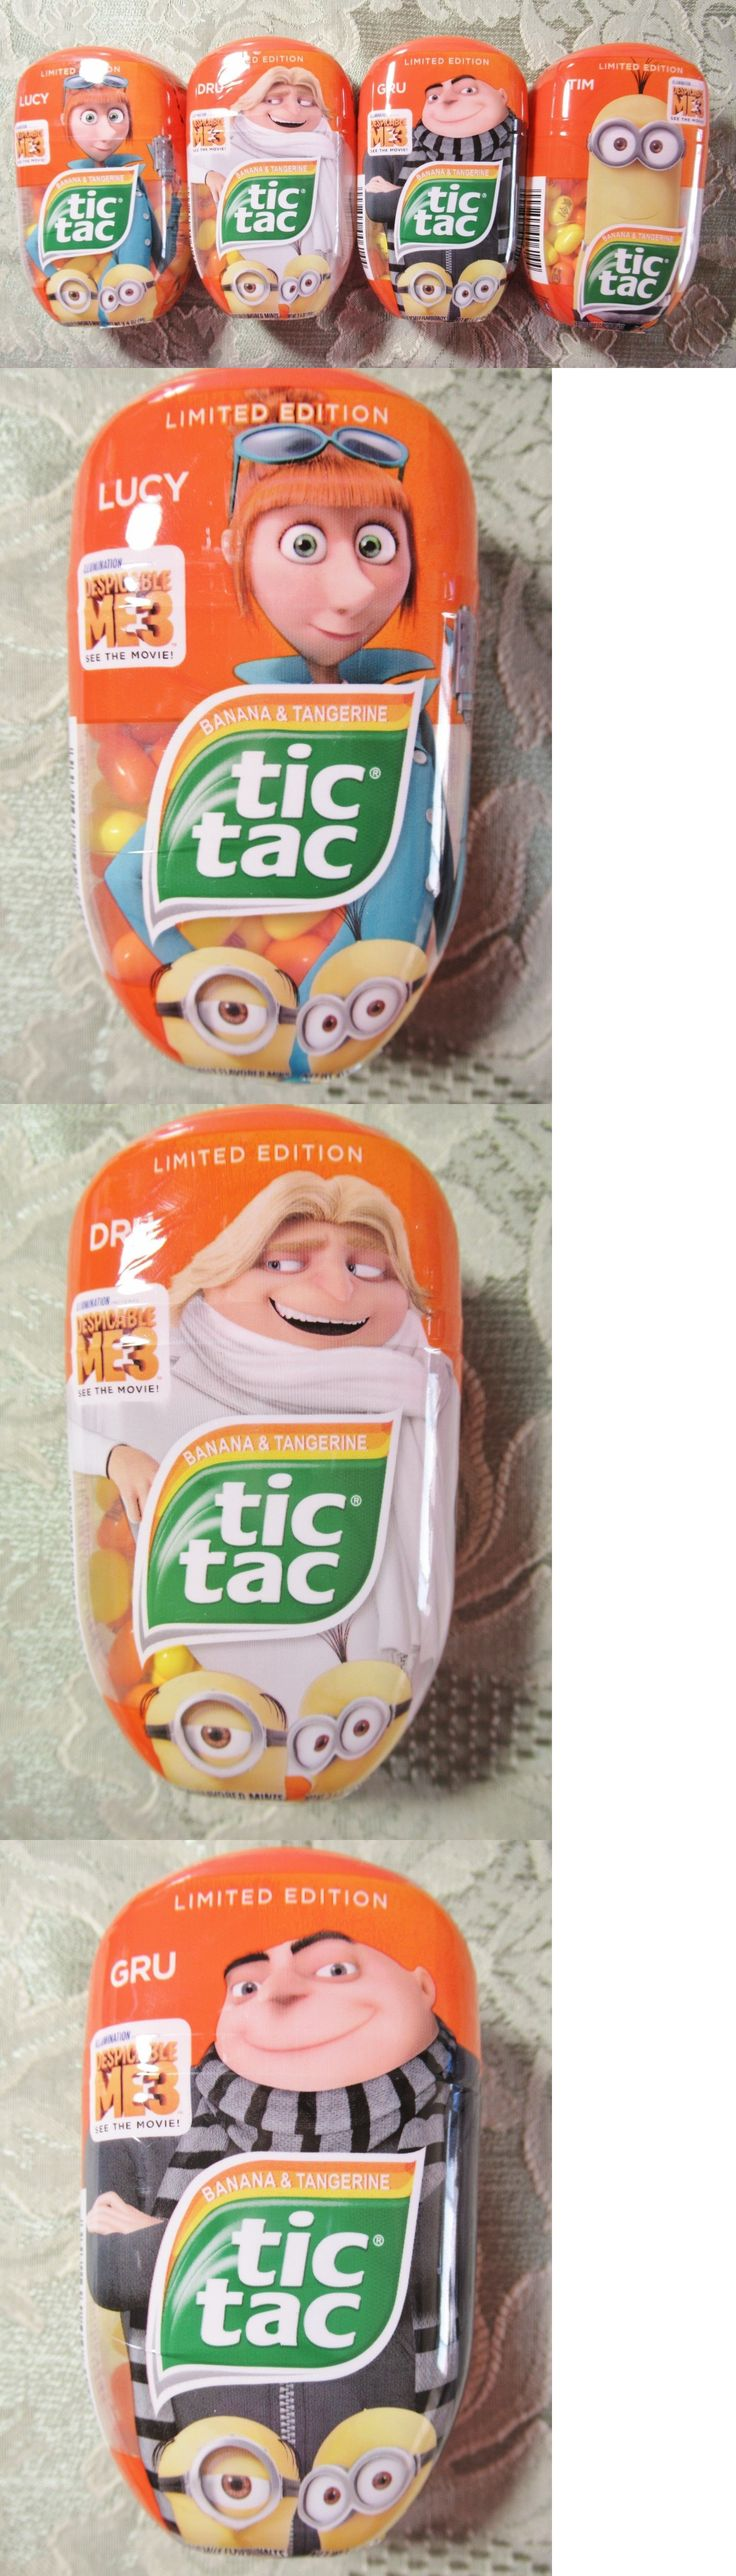 Mints 115717: 2017 Despicable Me 3 Limited Edition Minions Tic Tacs 4 Pack -> BUY IT NOW ONLY: $34.95 on eBay!